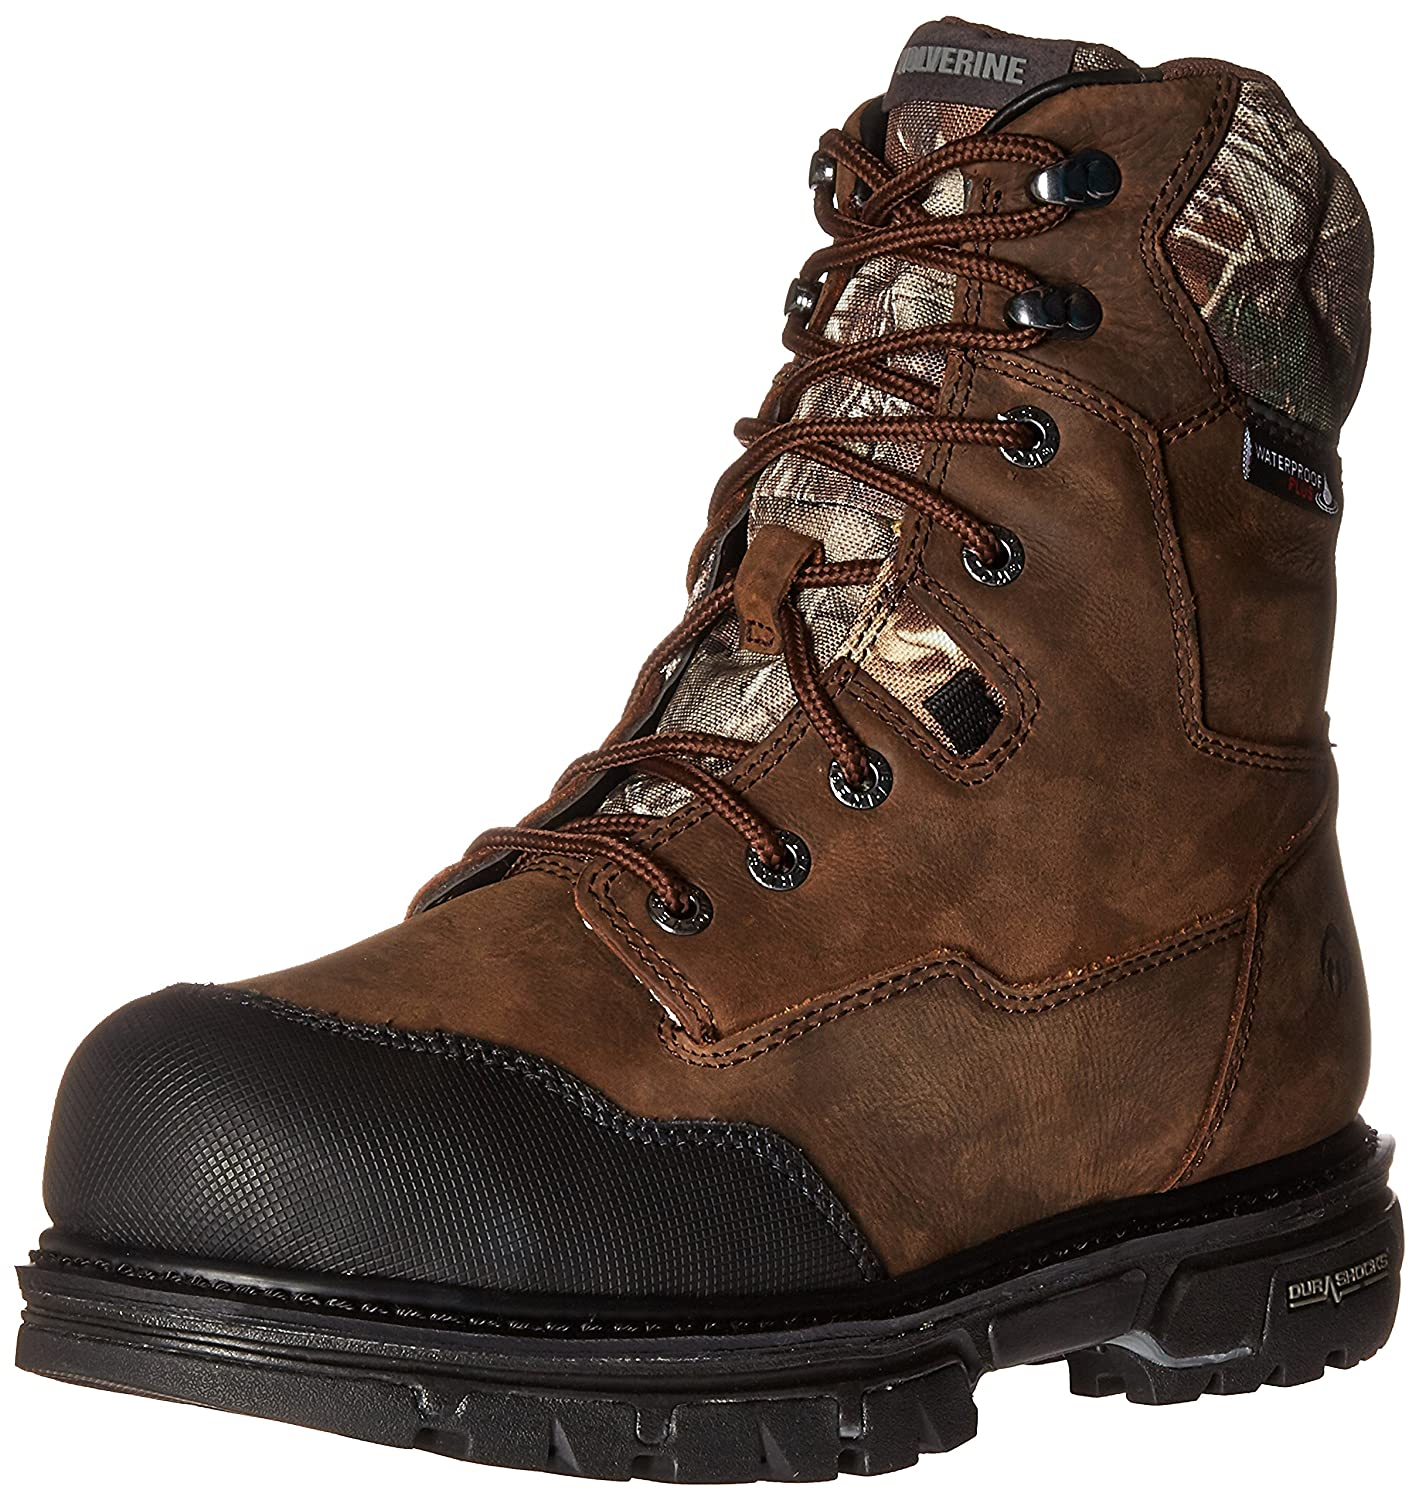 Wolverine メンズ Brown/Realtree 9 D(M) US 9 D(M) USBrown/Realtree B019WDP5QY